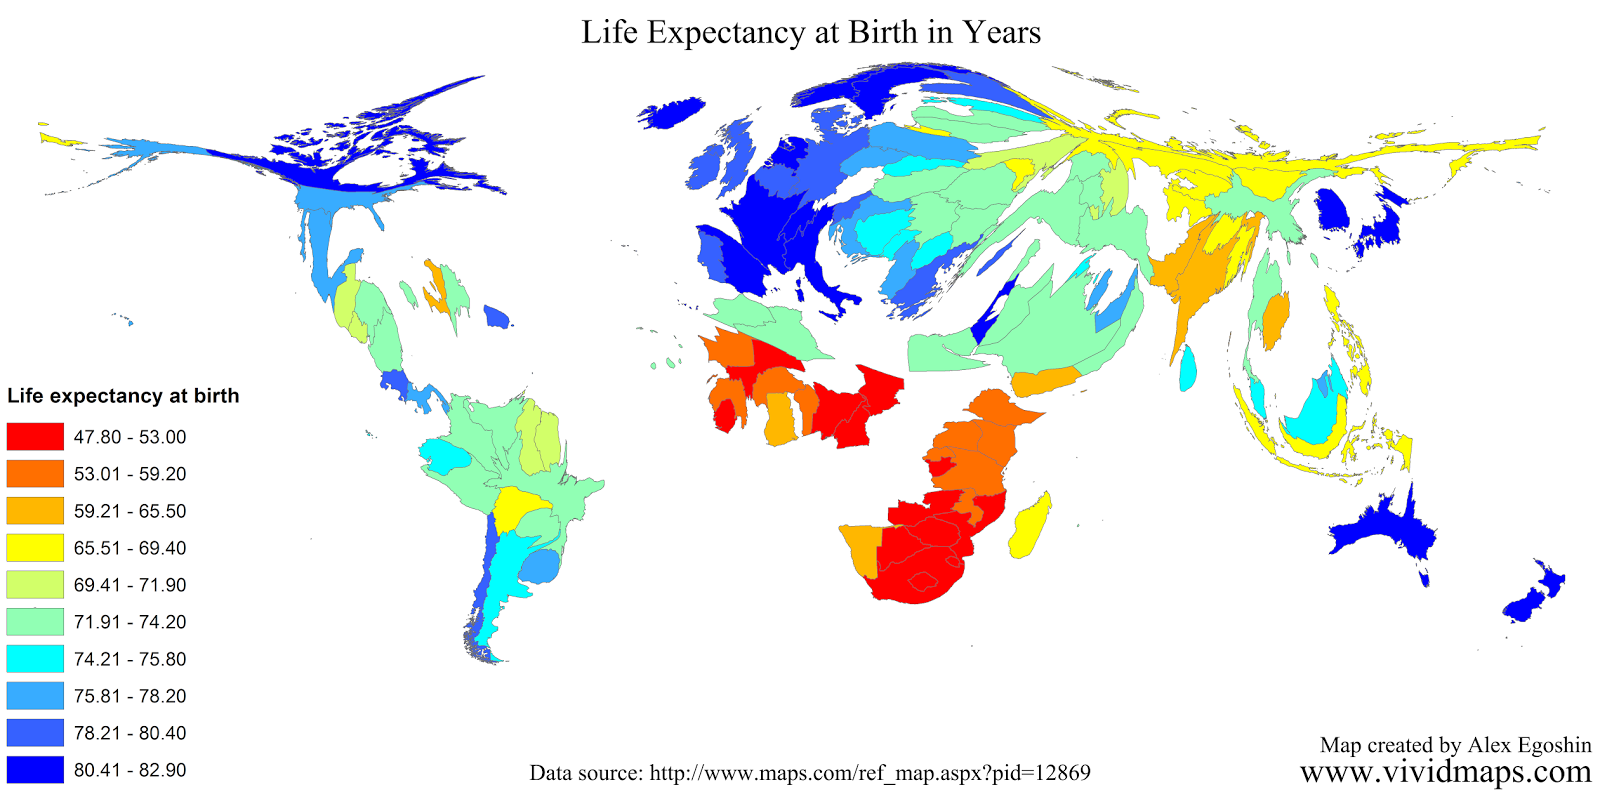 Life expectancy at birth in years